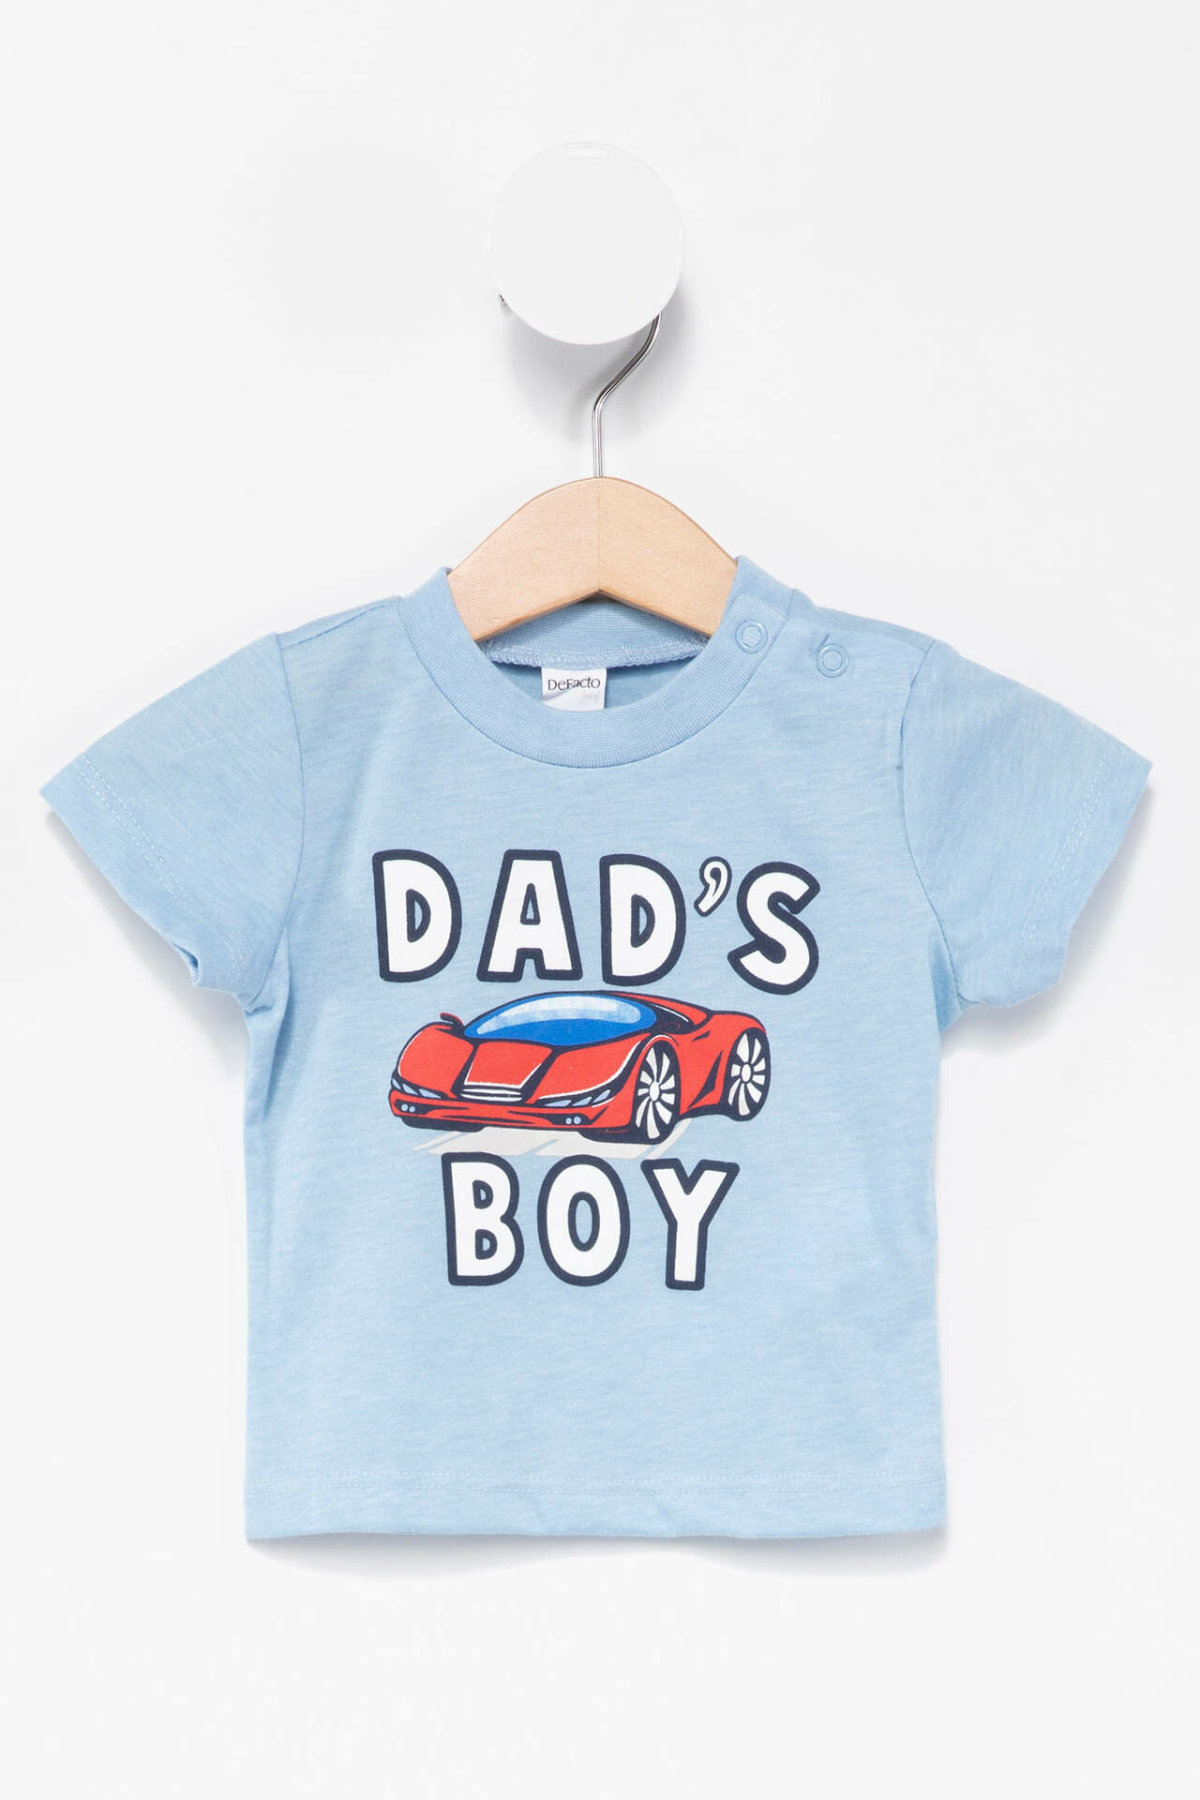 DeFacto New Boys Fashion O-neck Tops Boys Casual Cute Letter Pattern Short Sleeves Kids Comfort Tee Summer -J6774A218SM